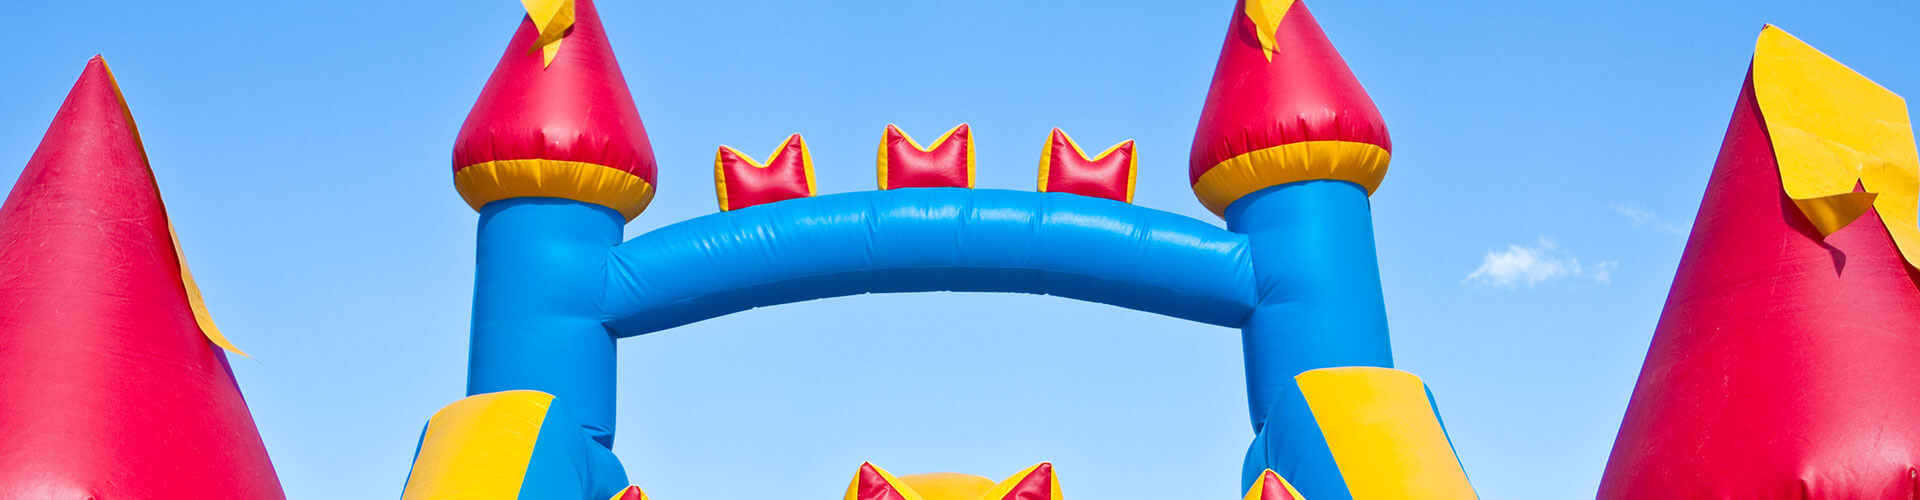 Riverton Face Painting, Bounce House Rental and Party Venue